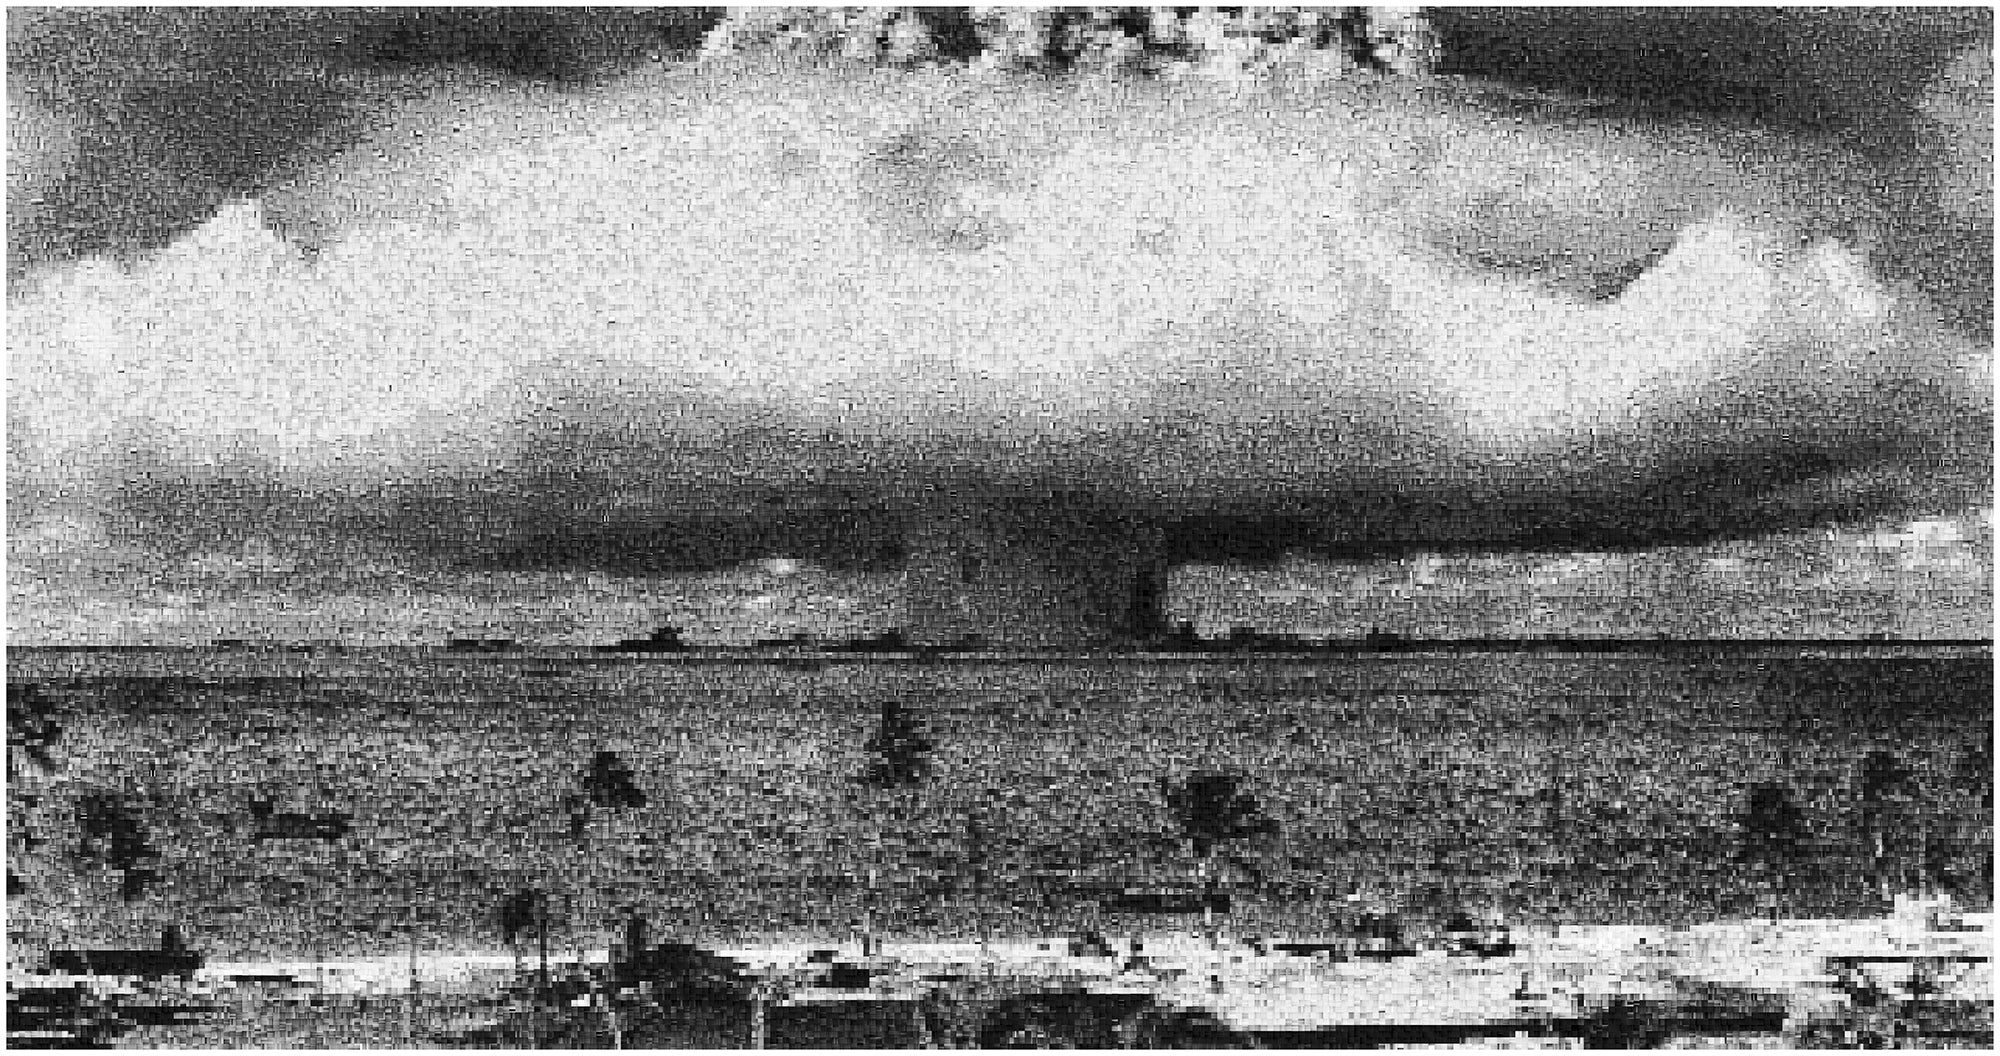 Operation Crossroads: Baker, Pixelated Image of Declassified Military Testing